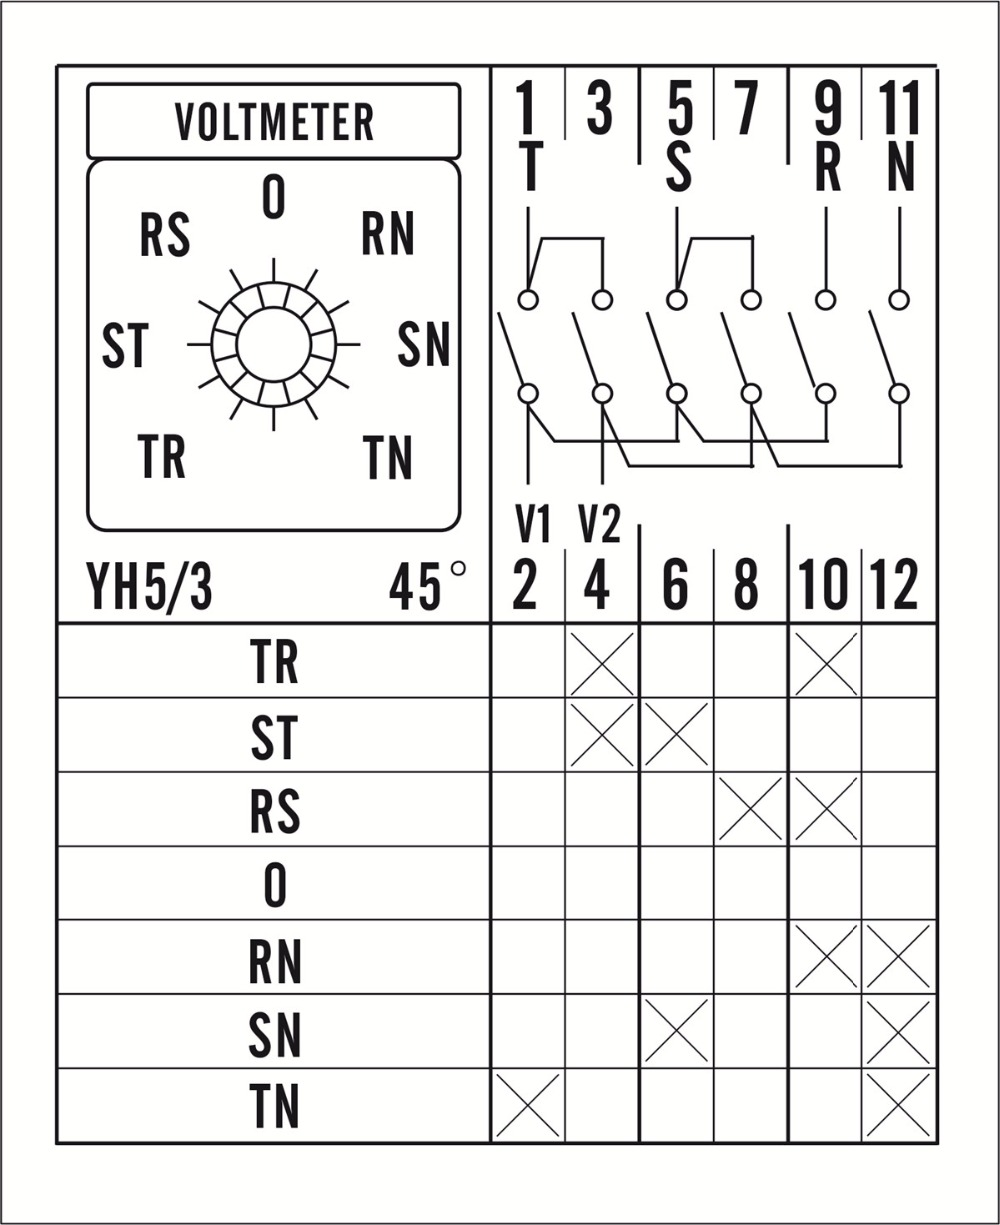 Cam Switch Wiring Diagram 6 Position Rotary House Symbols Voltmeter Selector Enthusiast Diagrams Salzer Connection Motor Question